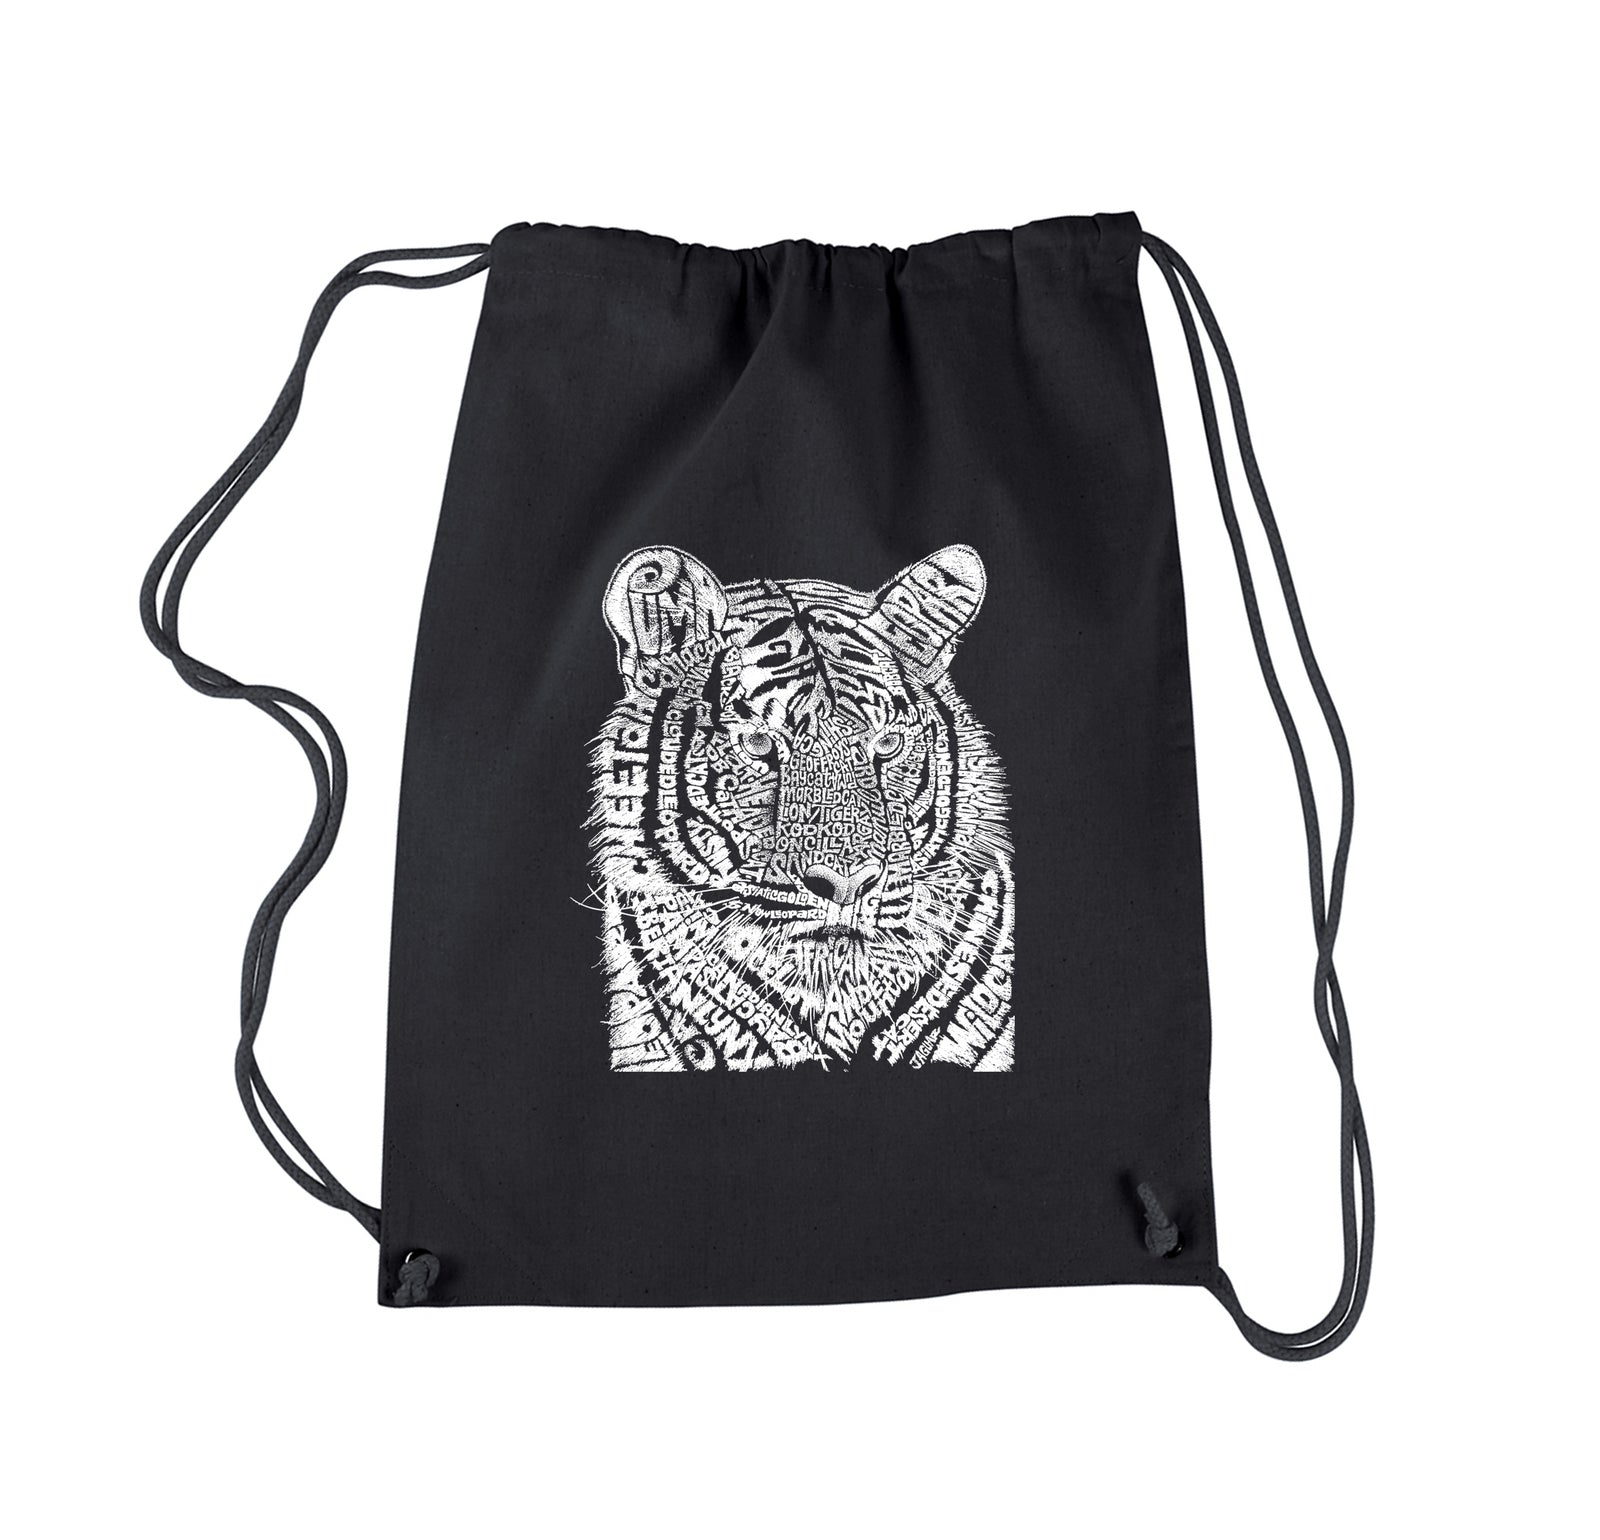 Drawstring Word Art Backpack - Big Cats